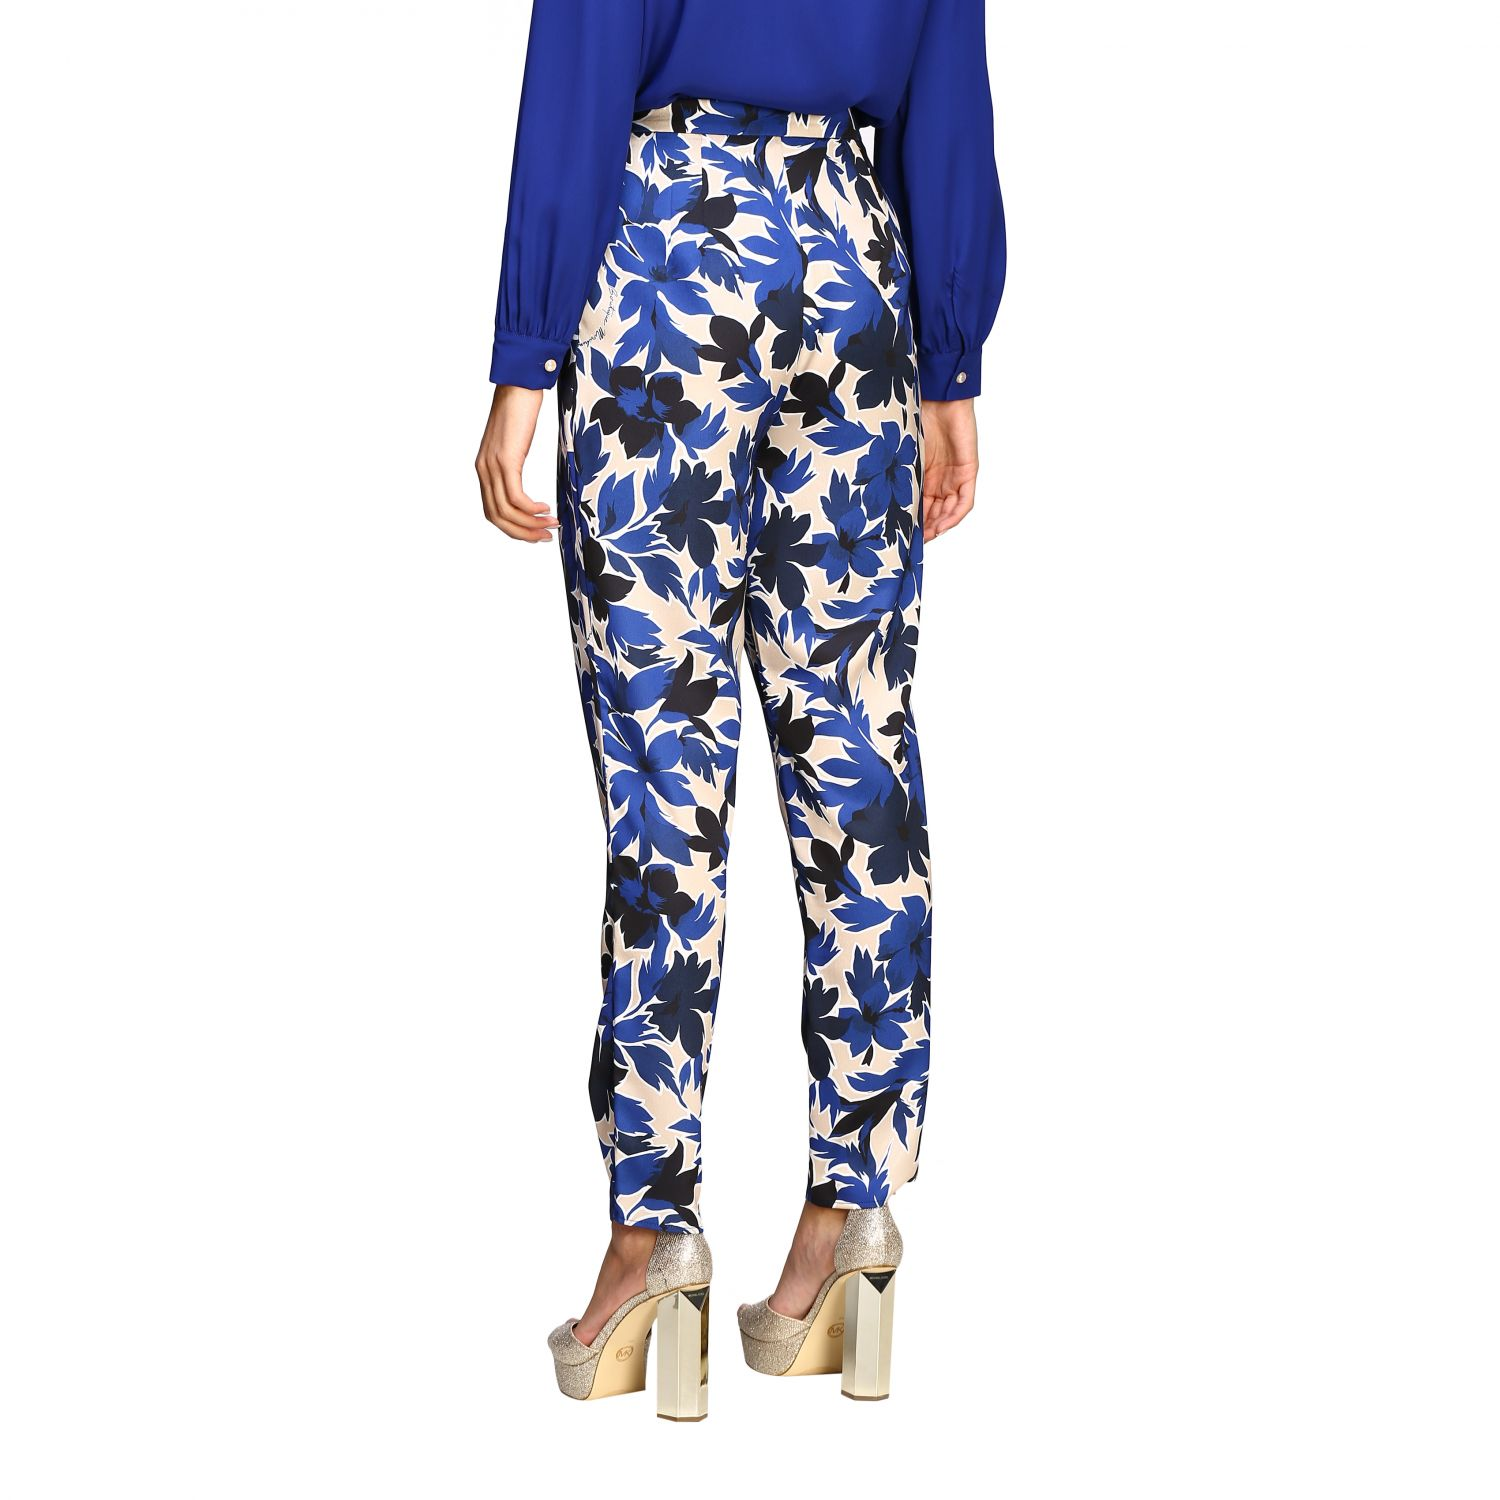 Trousers Boutique Moschino: Trousers women Boutique Moschino blue 3